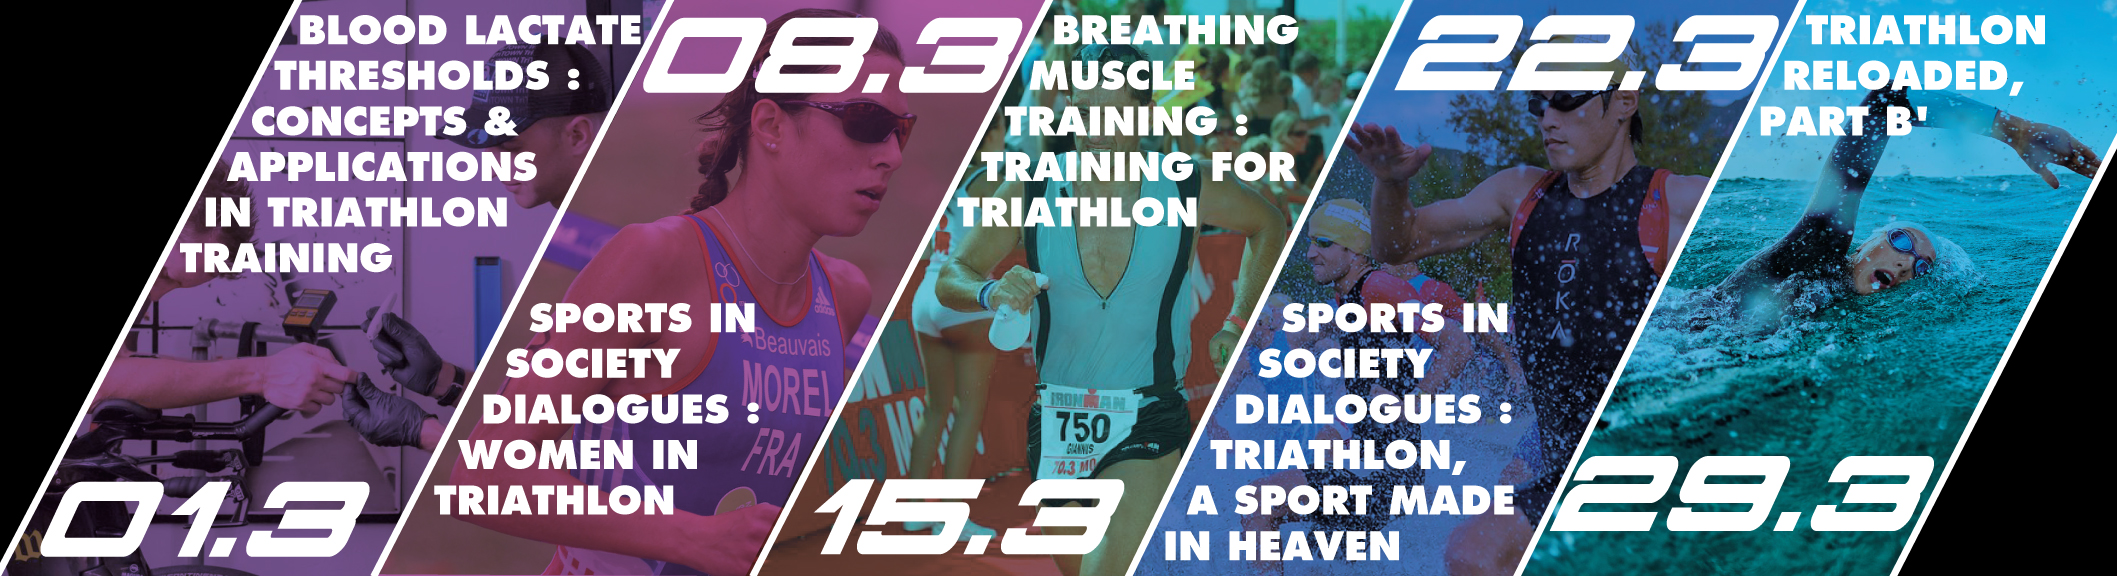 "Triathlon Lab Athens : Monday's Webinars & ""Social Dialogues"""